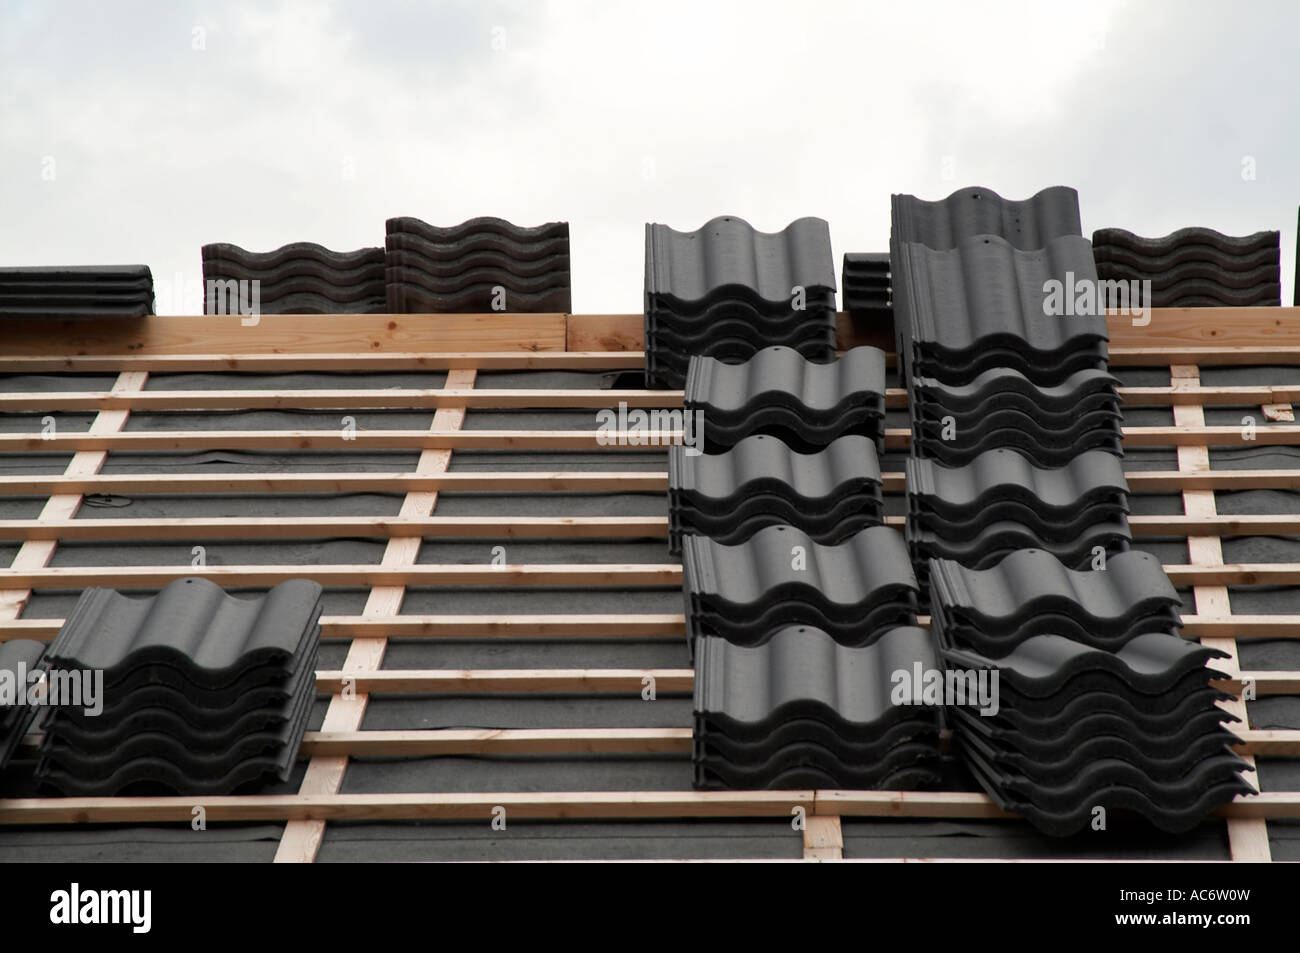 Stock Photo   Roof, Roofing, Tiles, Waterproof, Water, Proof, Watertight,  Tight, Building, Asphalt, Lats